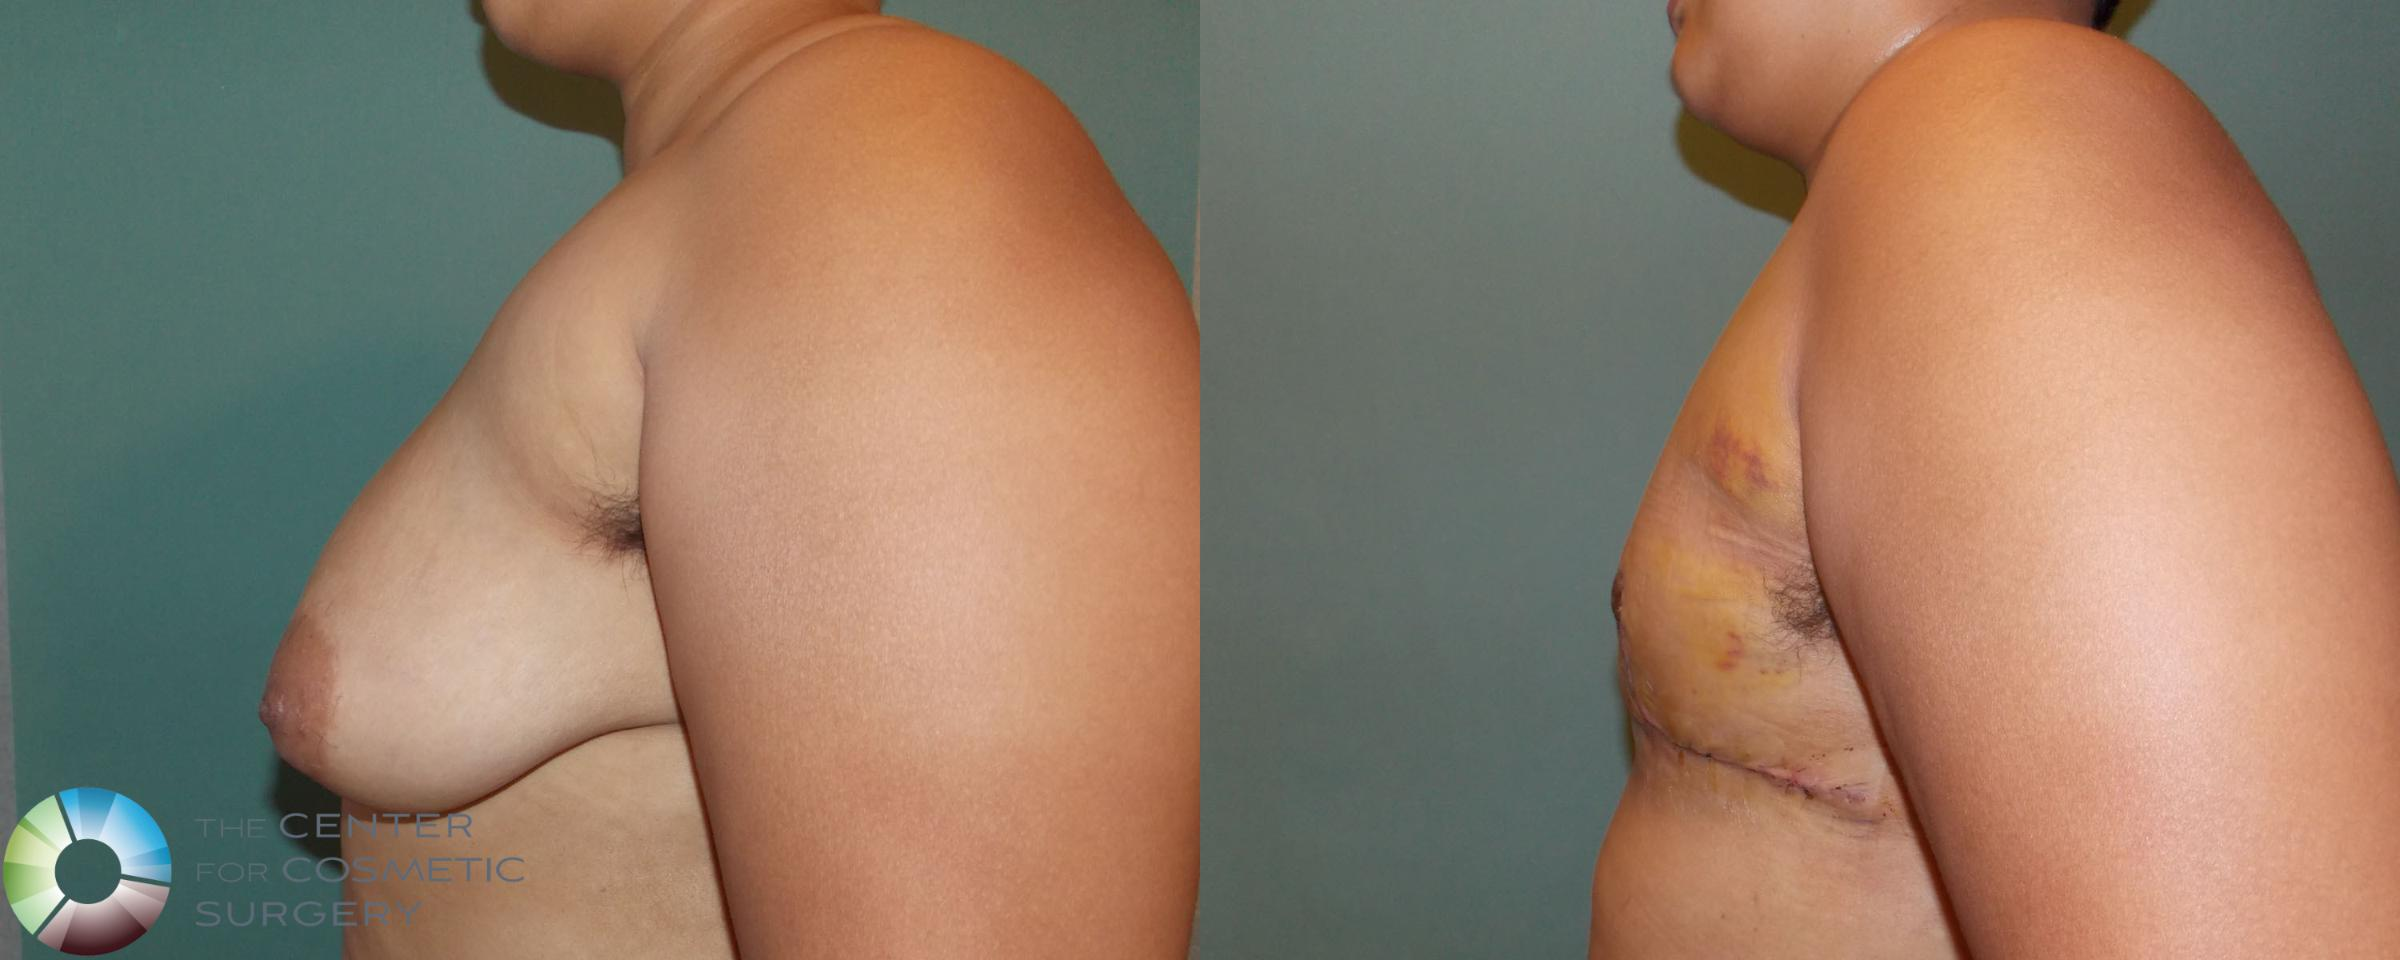 FTM Top Surgery/Chest Masculinization Case 699 Before & After View #3 | Golden, CO | The Center for Cosmetic Surgery